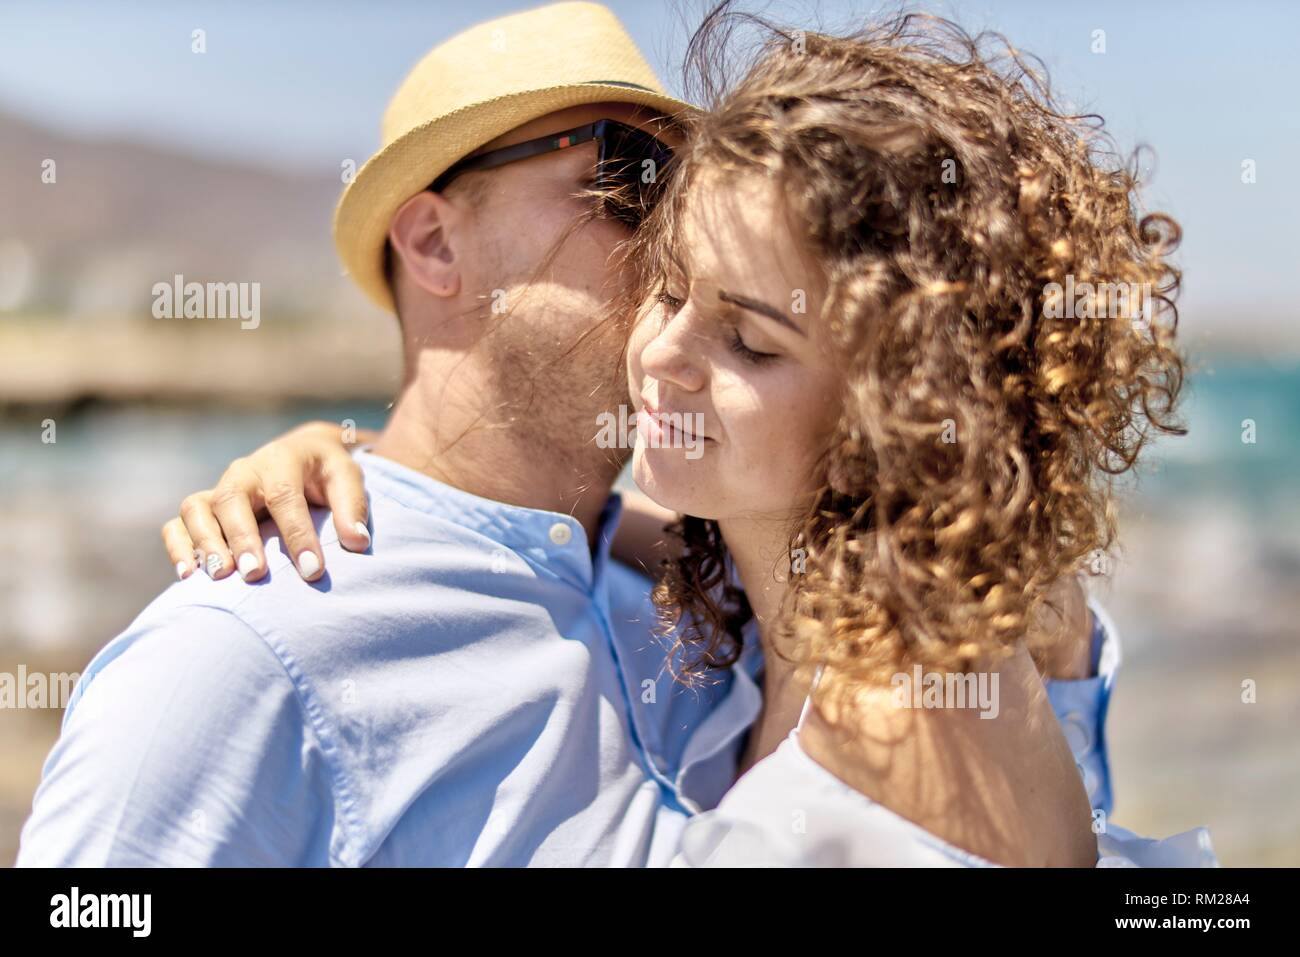 woman enjoying seduction of man, at beach, holidays, summer - Stock Image